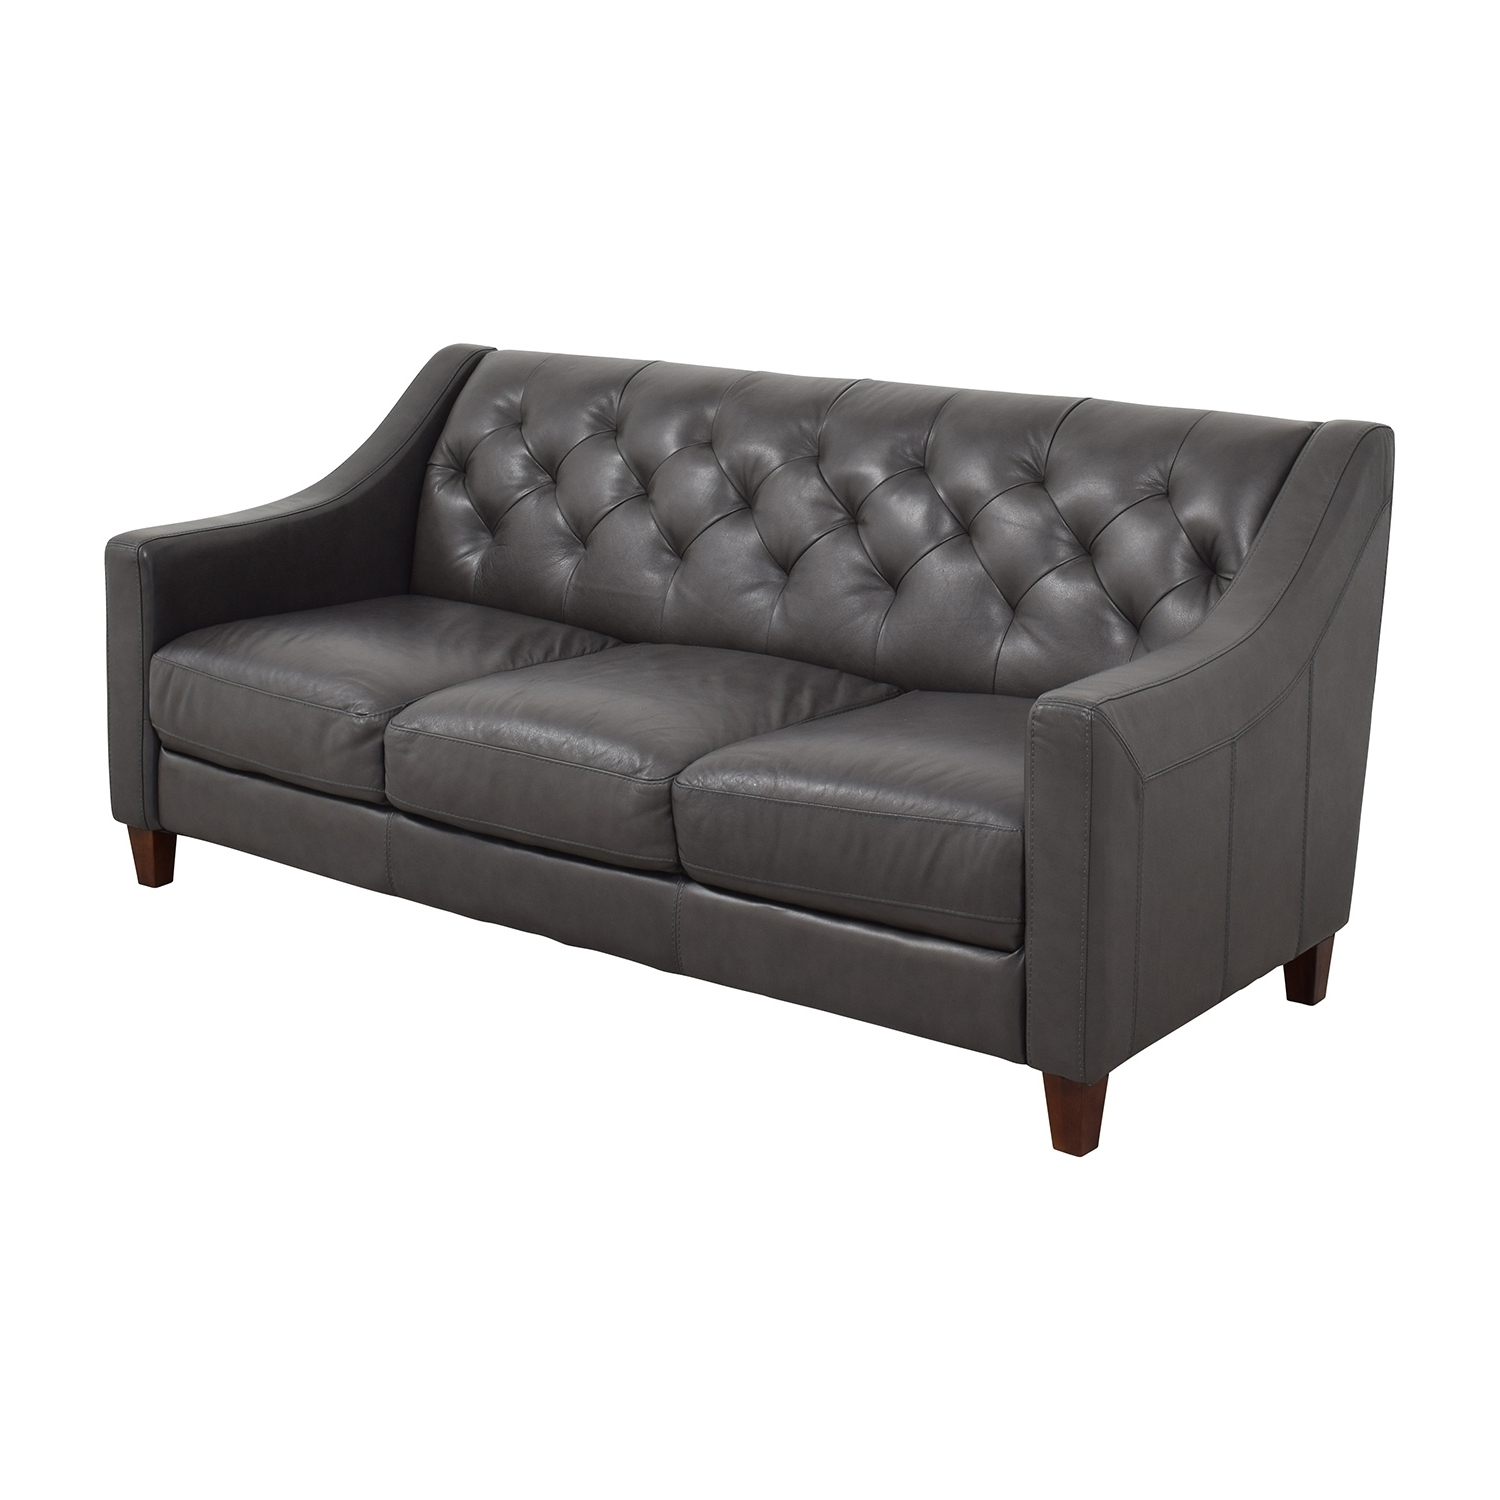 Newest Macys Leather Sofa And Loveseat • Leather Sofa With Regard To Macys Leather Sofas (View 18 of 20)